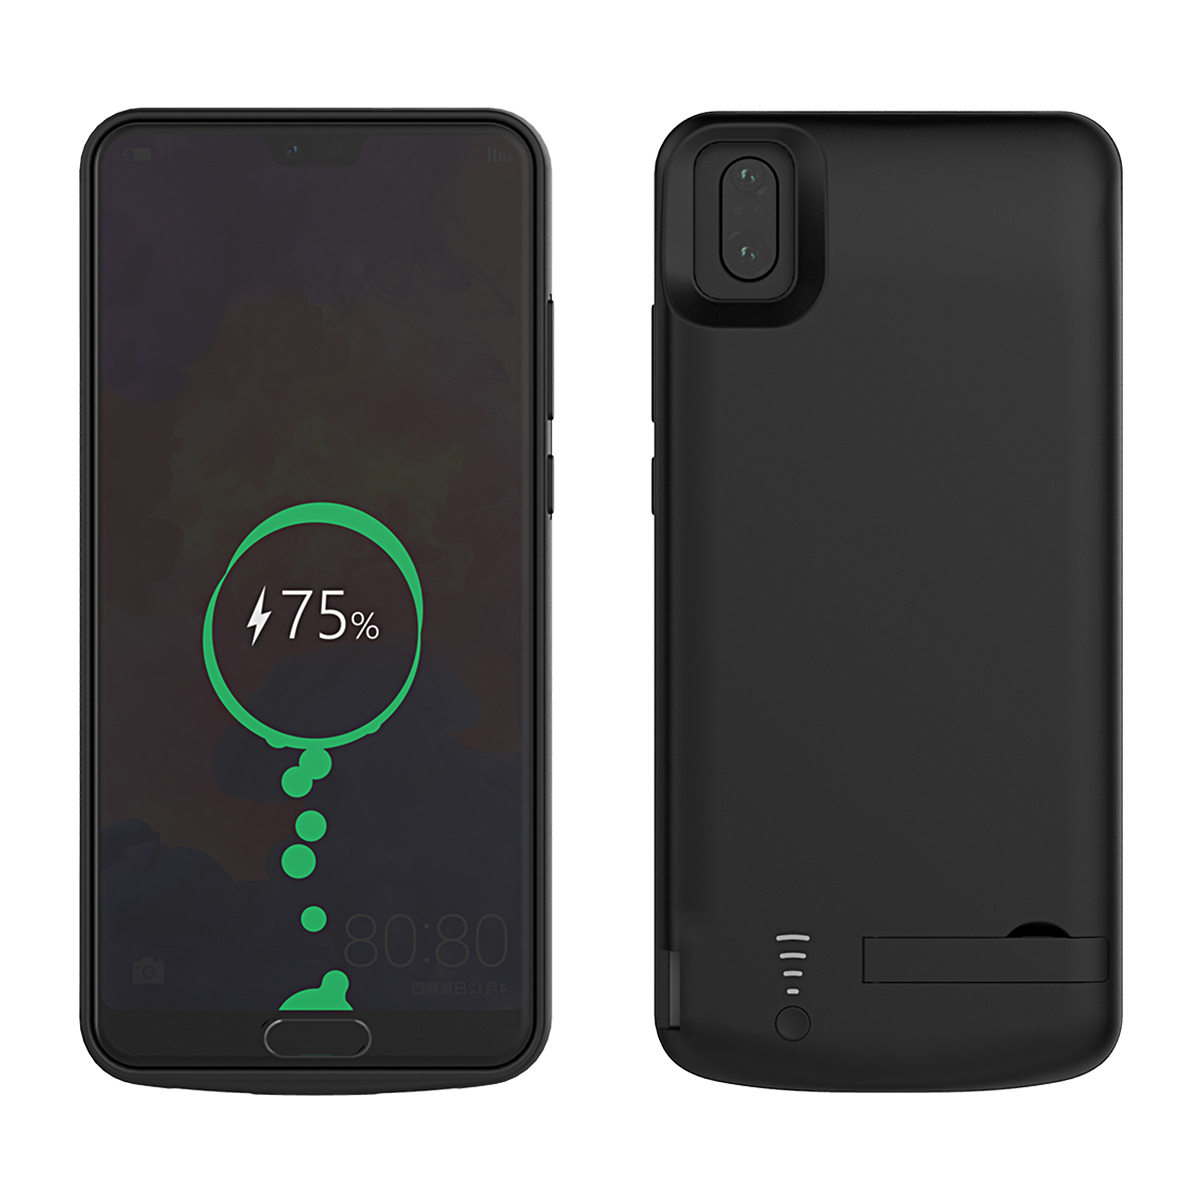 CASEWIN <font><b>Battery</b></font> Charger <font><b>Case</b></font> For <font><b>Huawei</b></font> <font><b>P20</b></font> Pro <font><b>Battery</b></font> <font><b>Case</b></font> Soft Silicone 6500mAh Power Bank External Backup Charger phone <font><b>Case</b></font> image